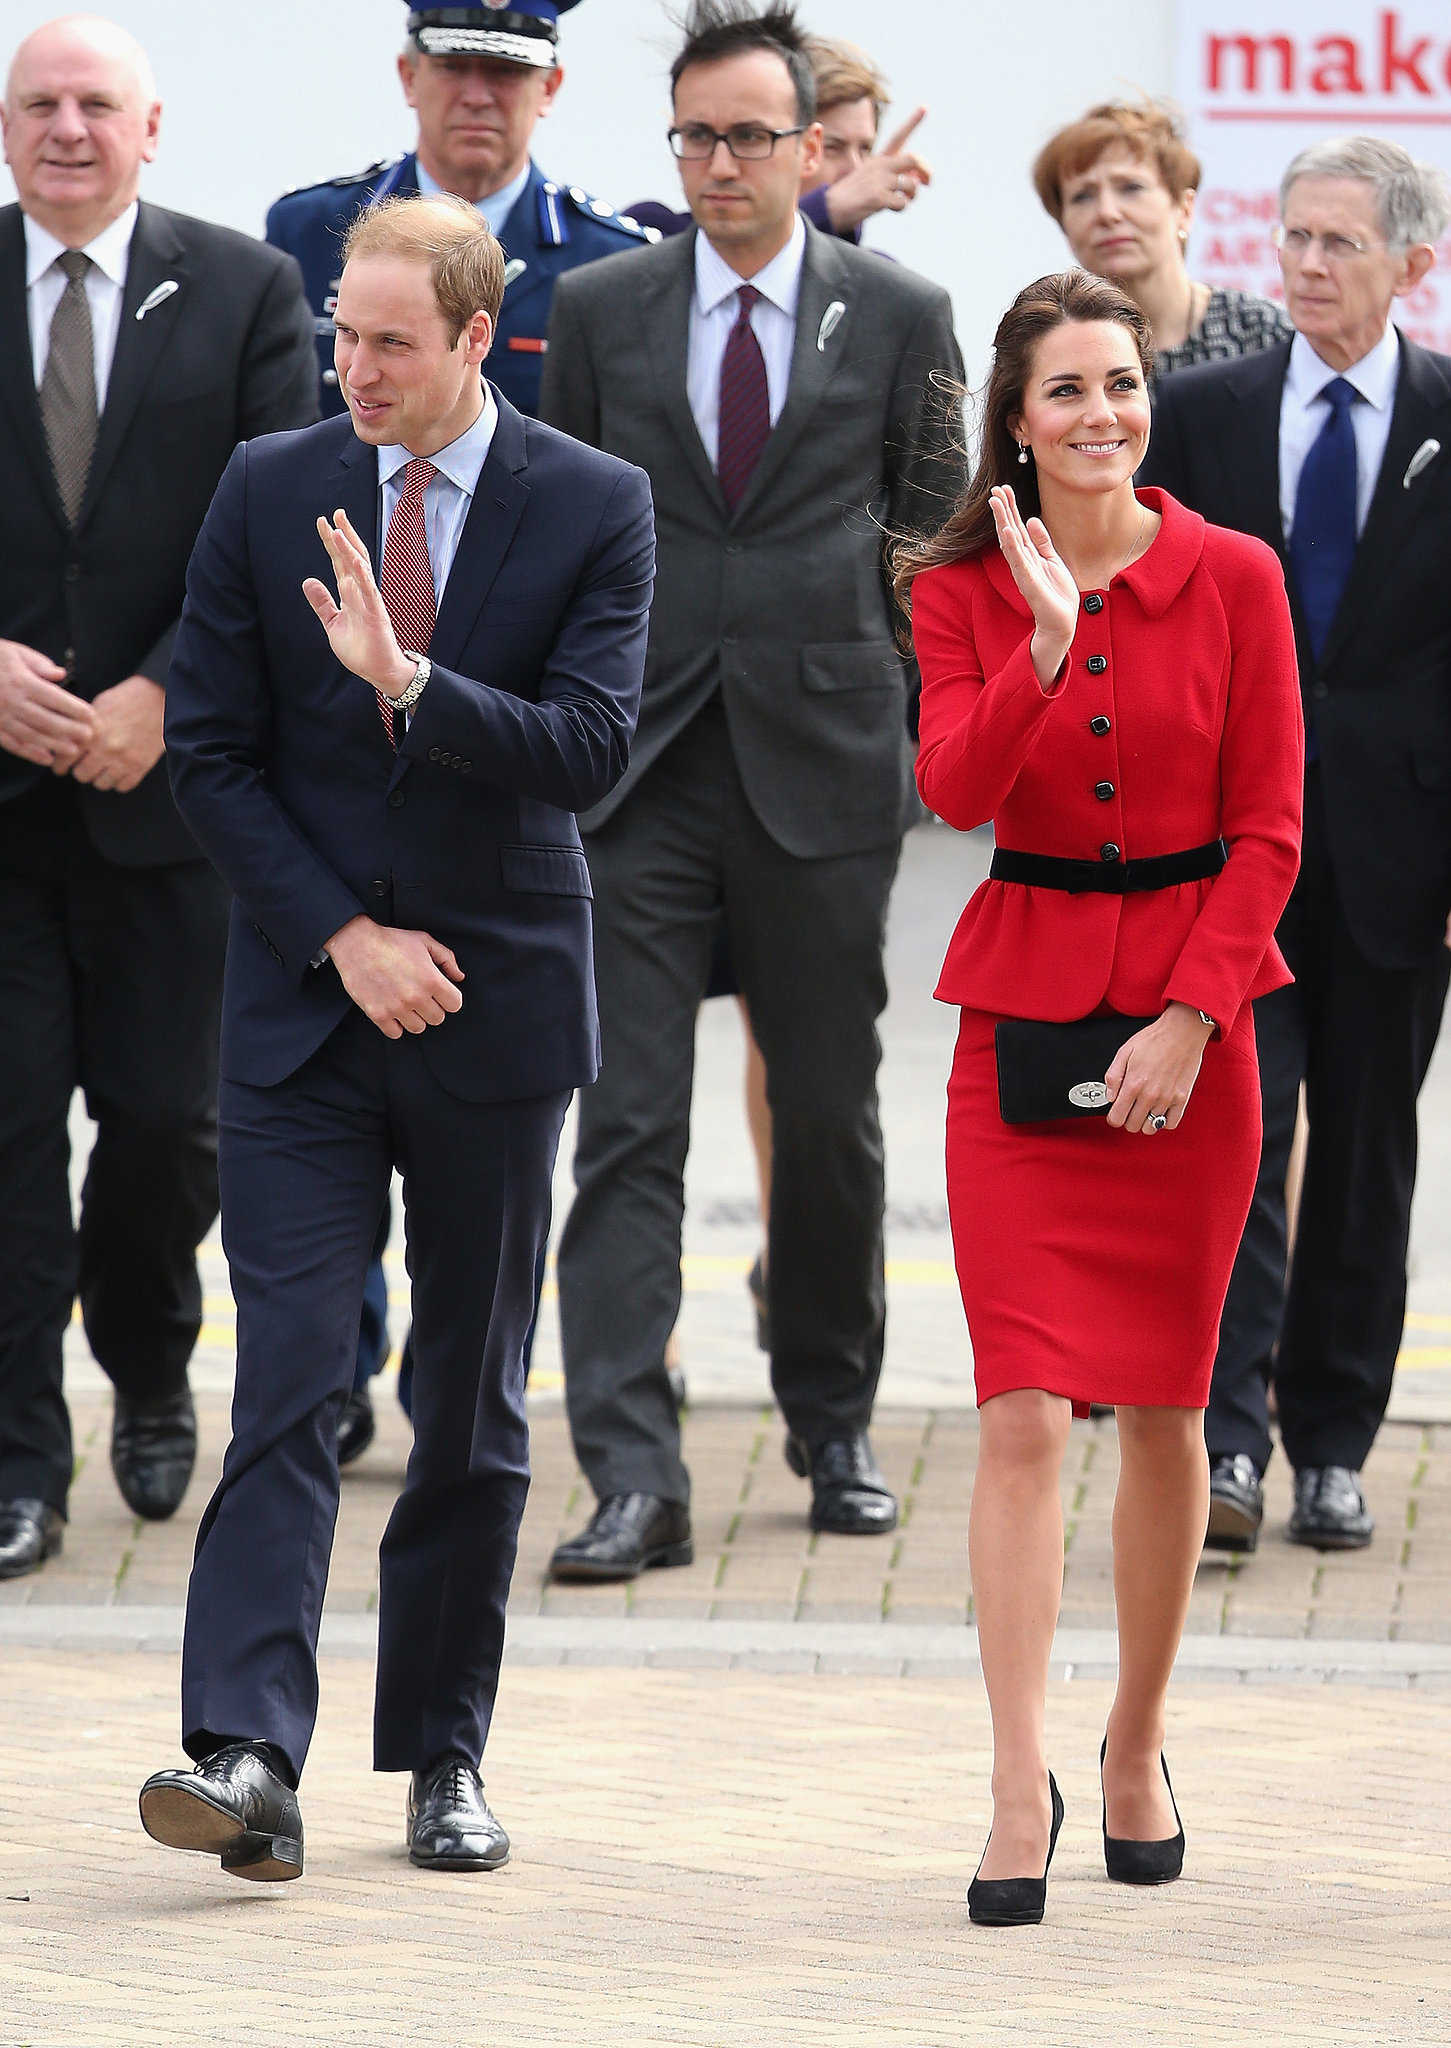 Even Kate Middleton Has Awkward Moments